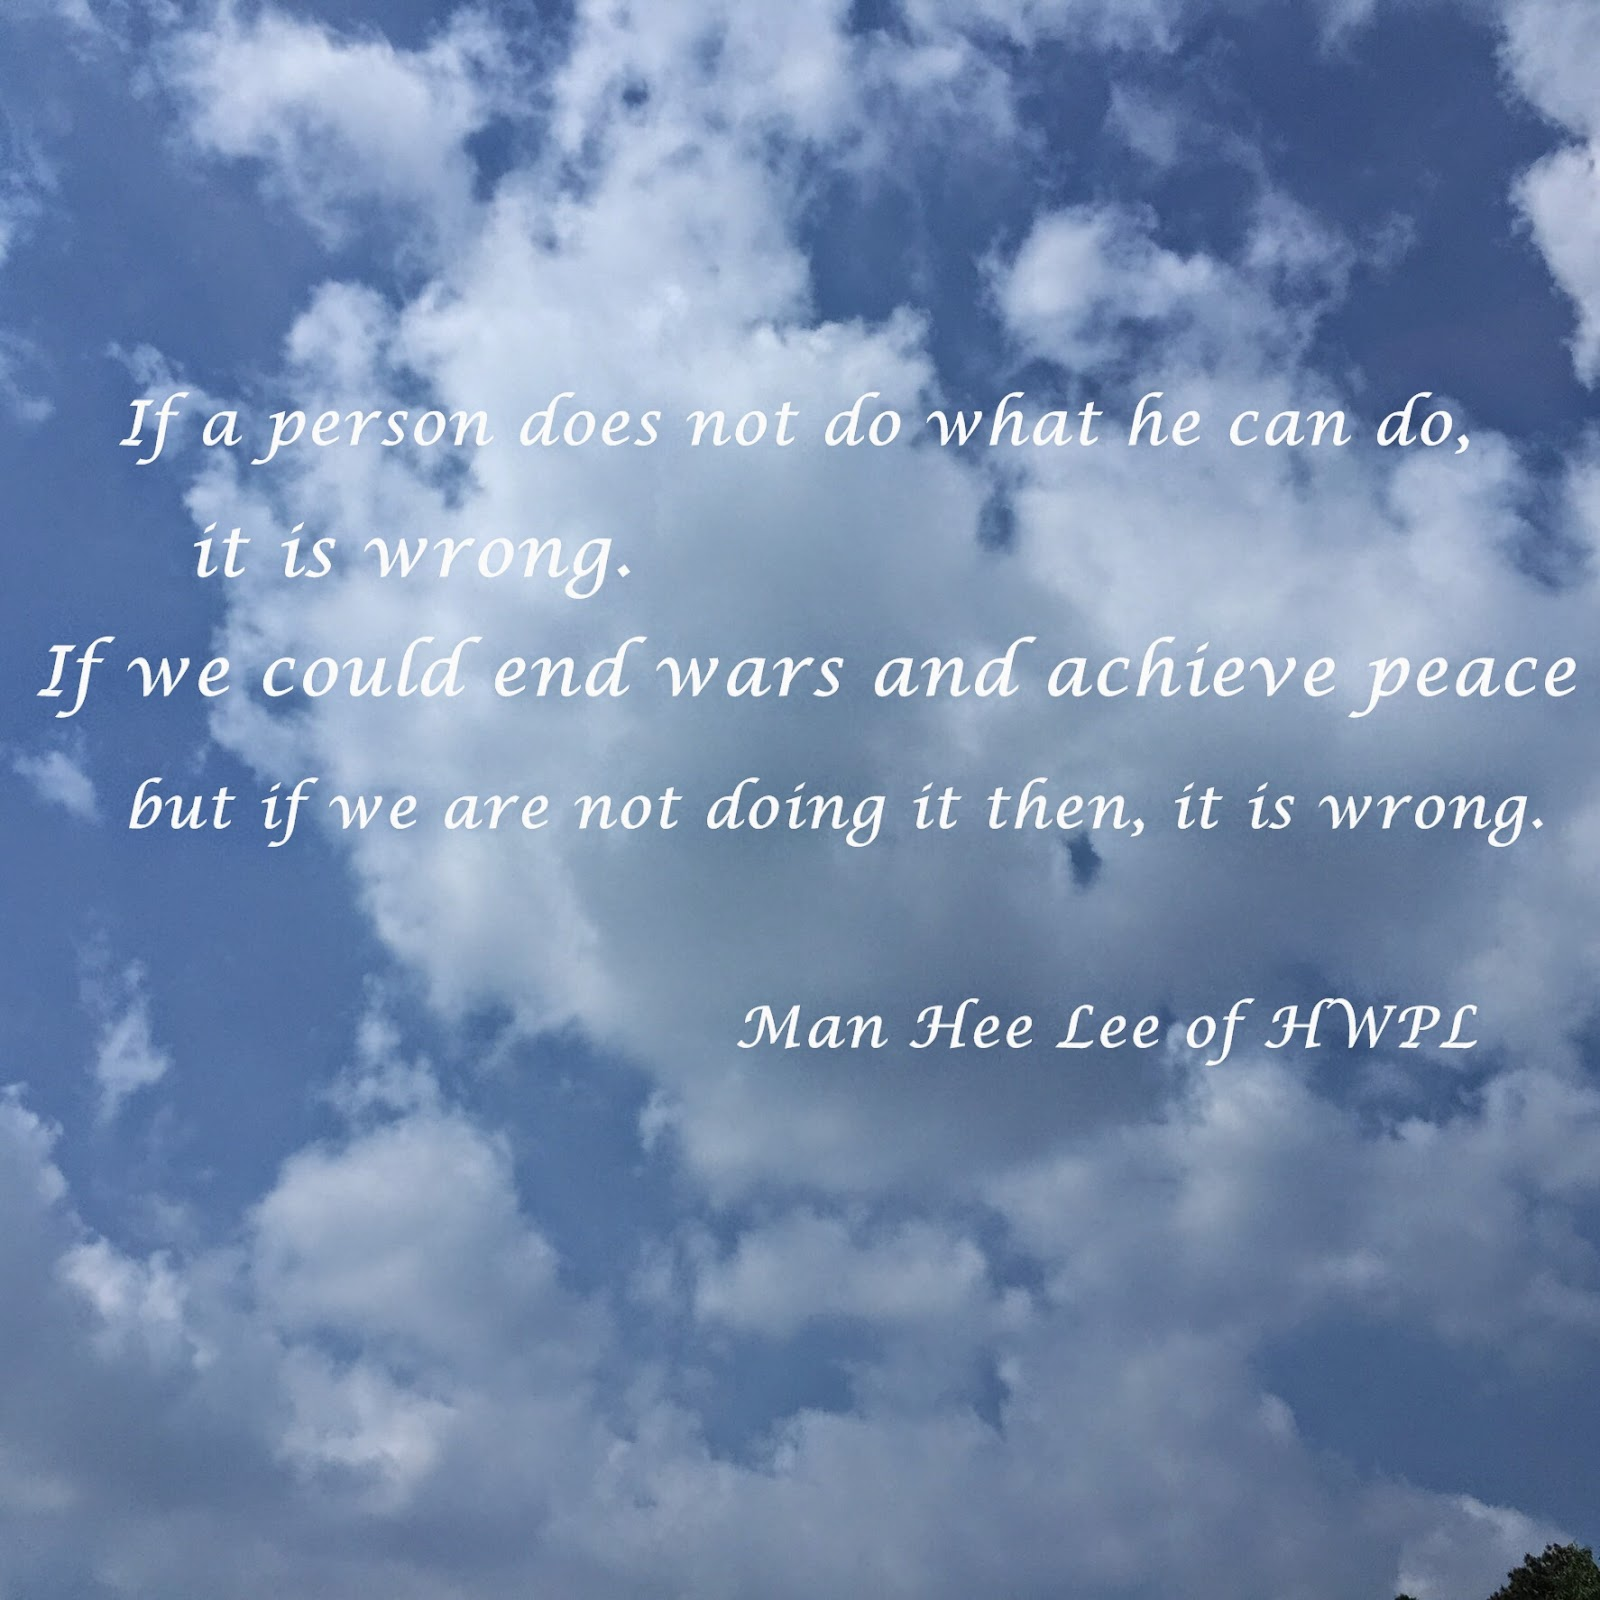 Peace Quotes Peace Quotes Man Hee Lee  Chairman Of Hwpl  Beautiful World